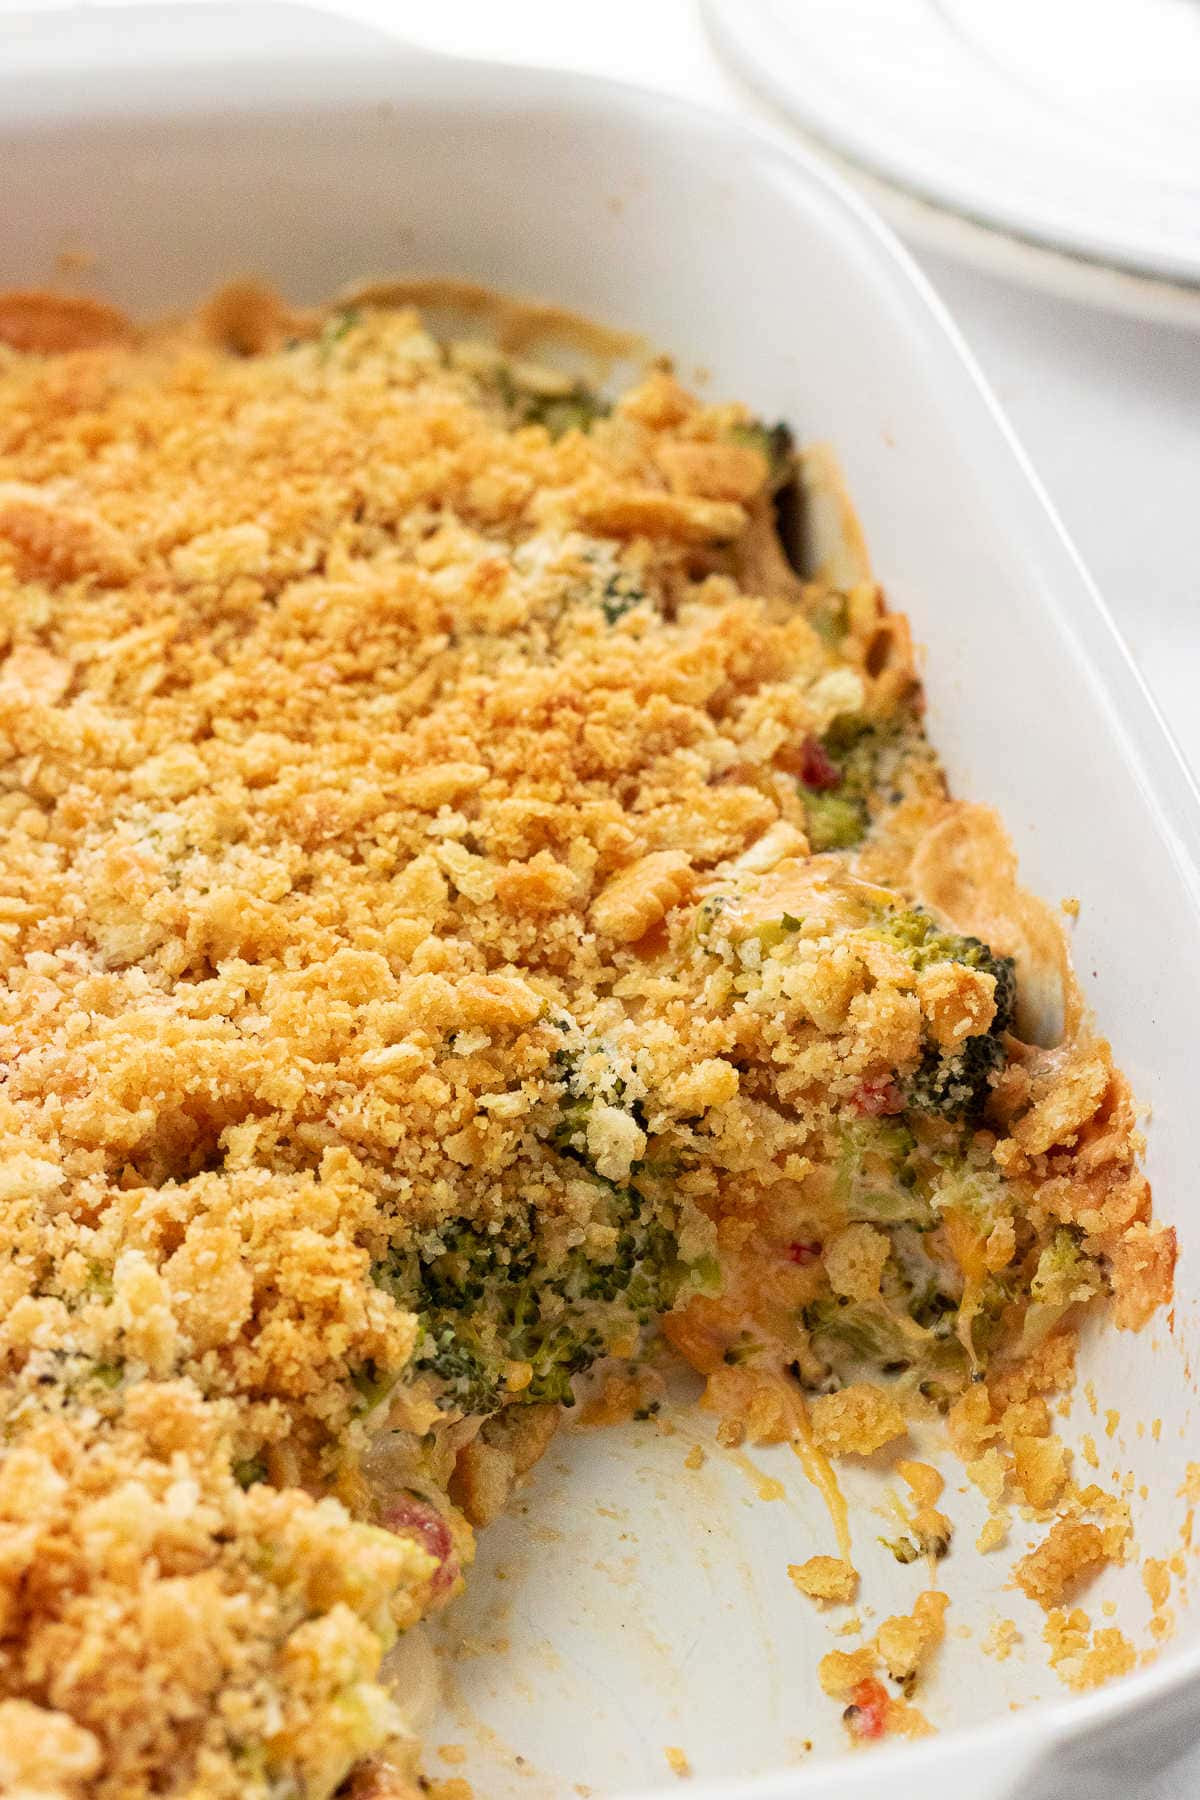 Casserole with a serving removed.